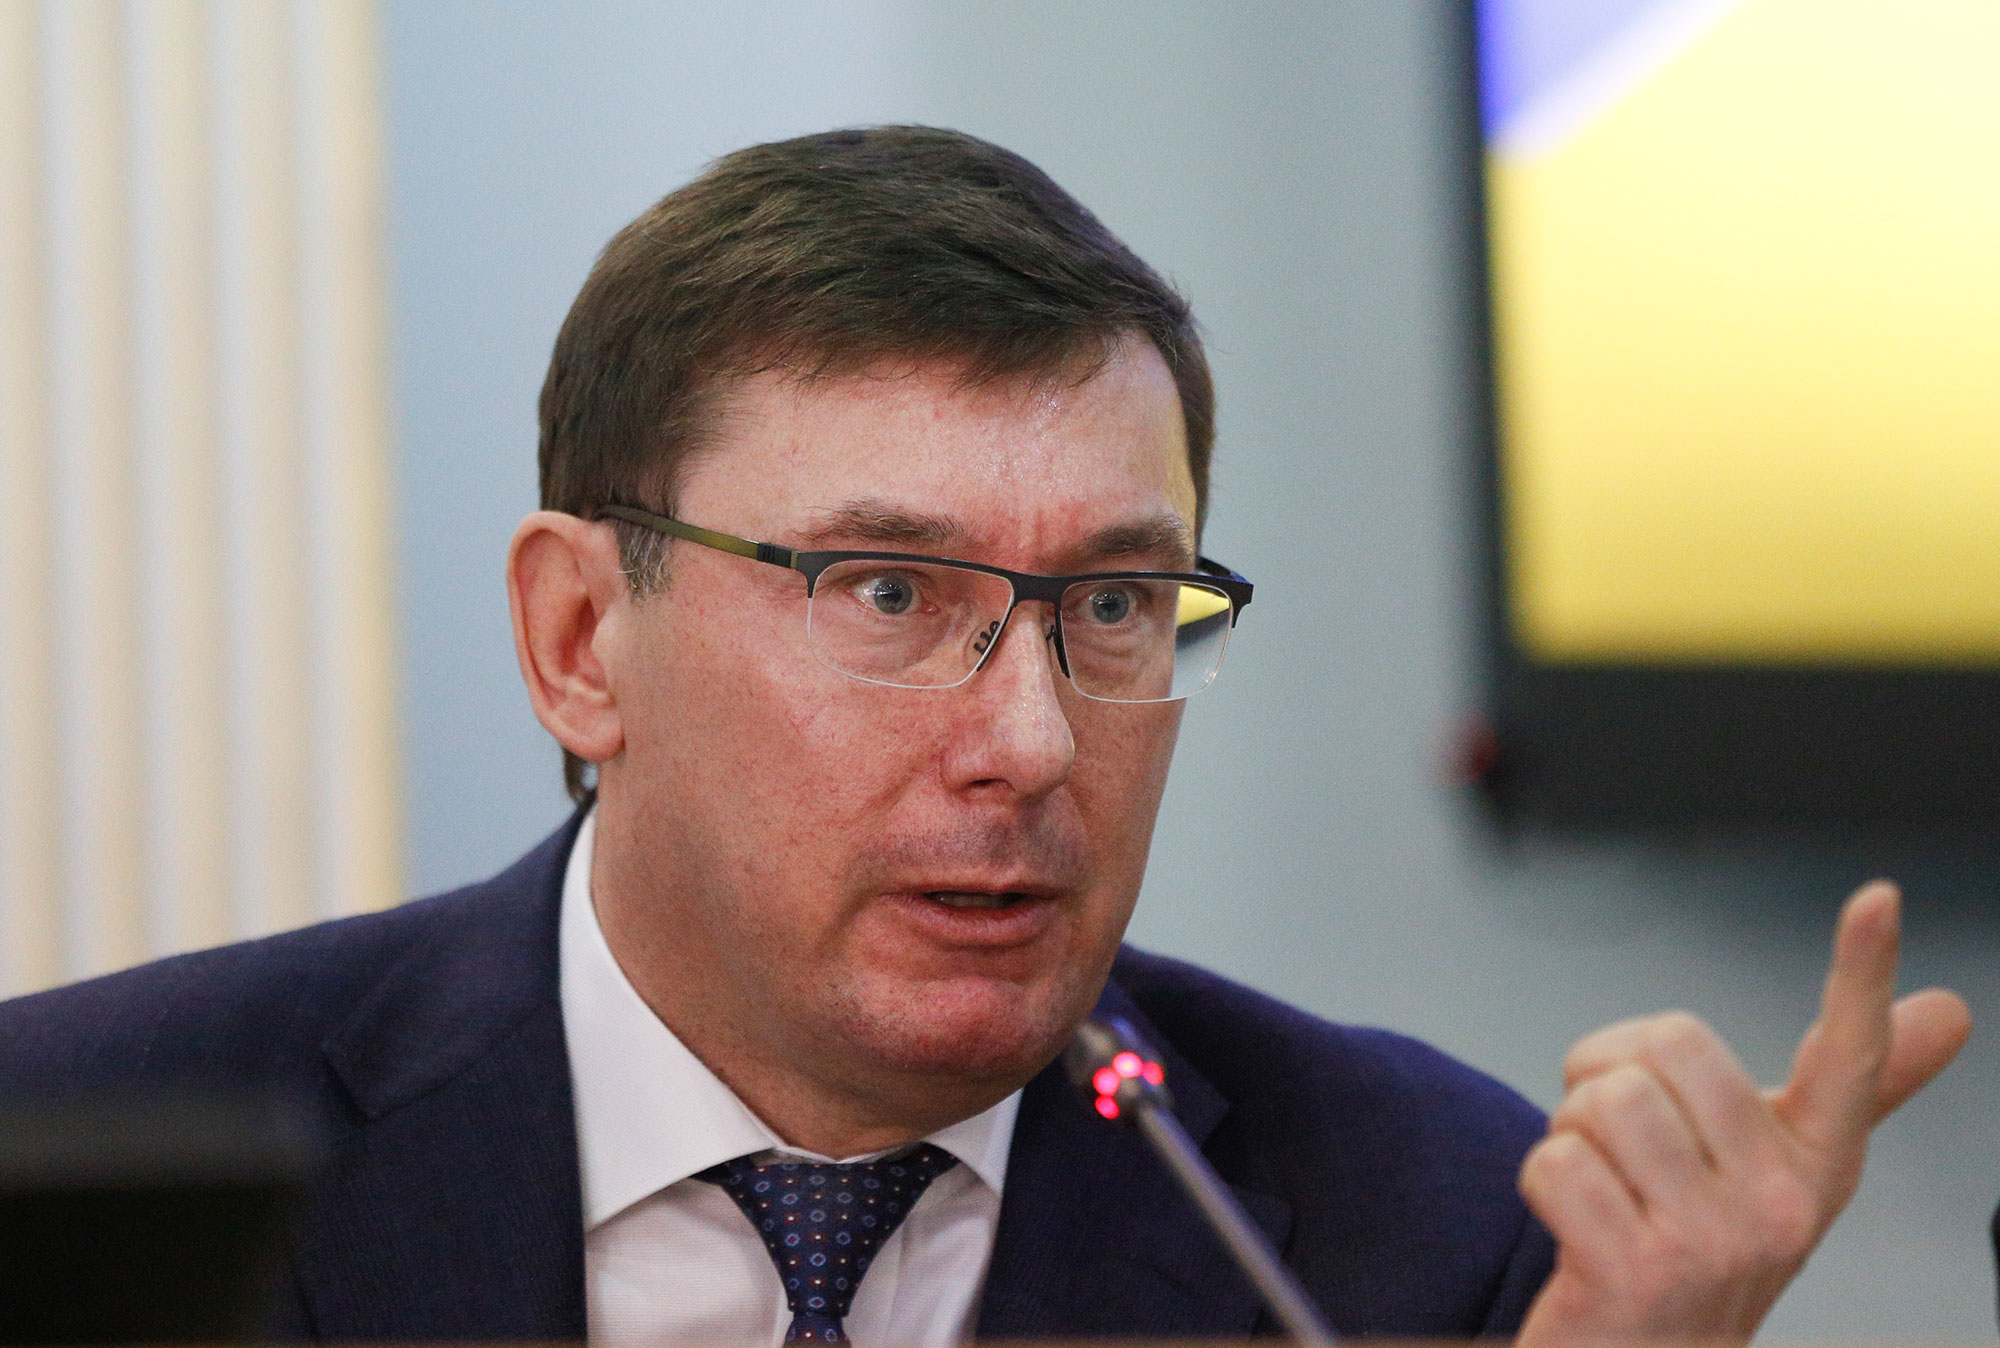 Ukrainian Prosecutor General Yuriy Lutsenko speaks during a briefing at the Central Election Commission in Kiev, Ukraine, in March 2019.